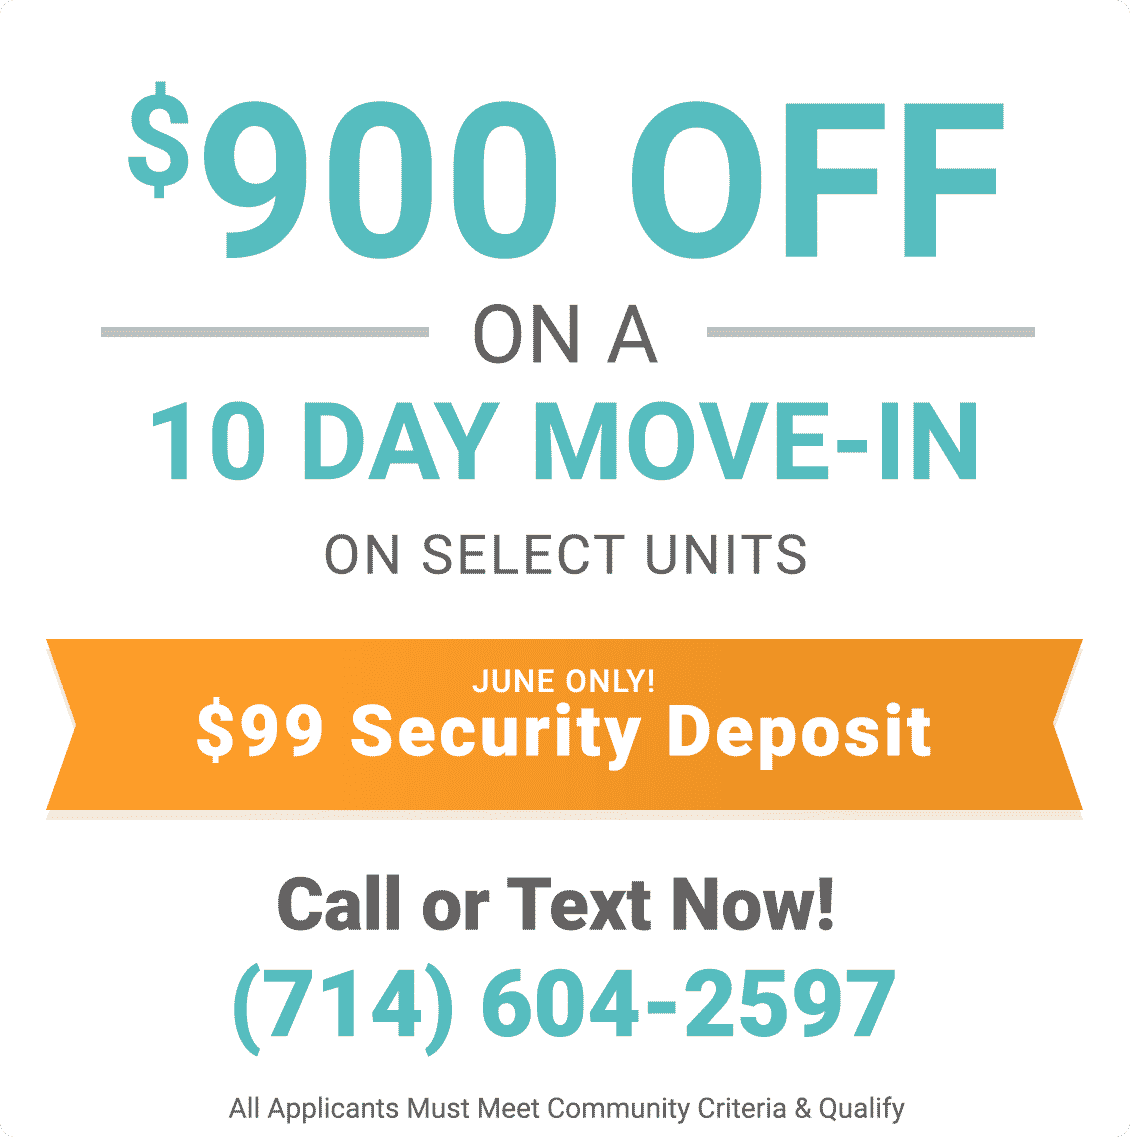 $900 off on a 10 day move-in on selected units